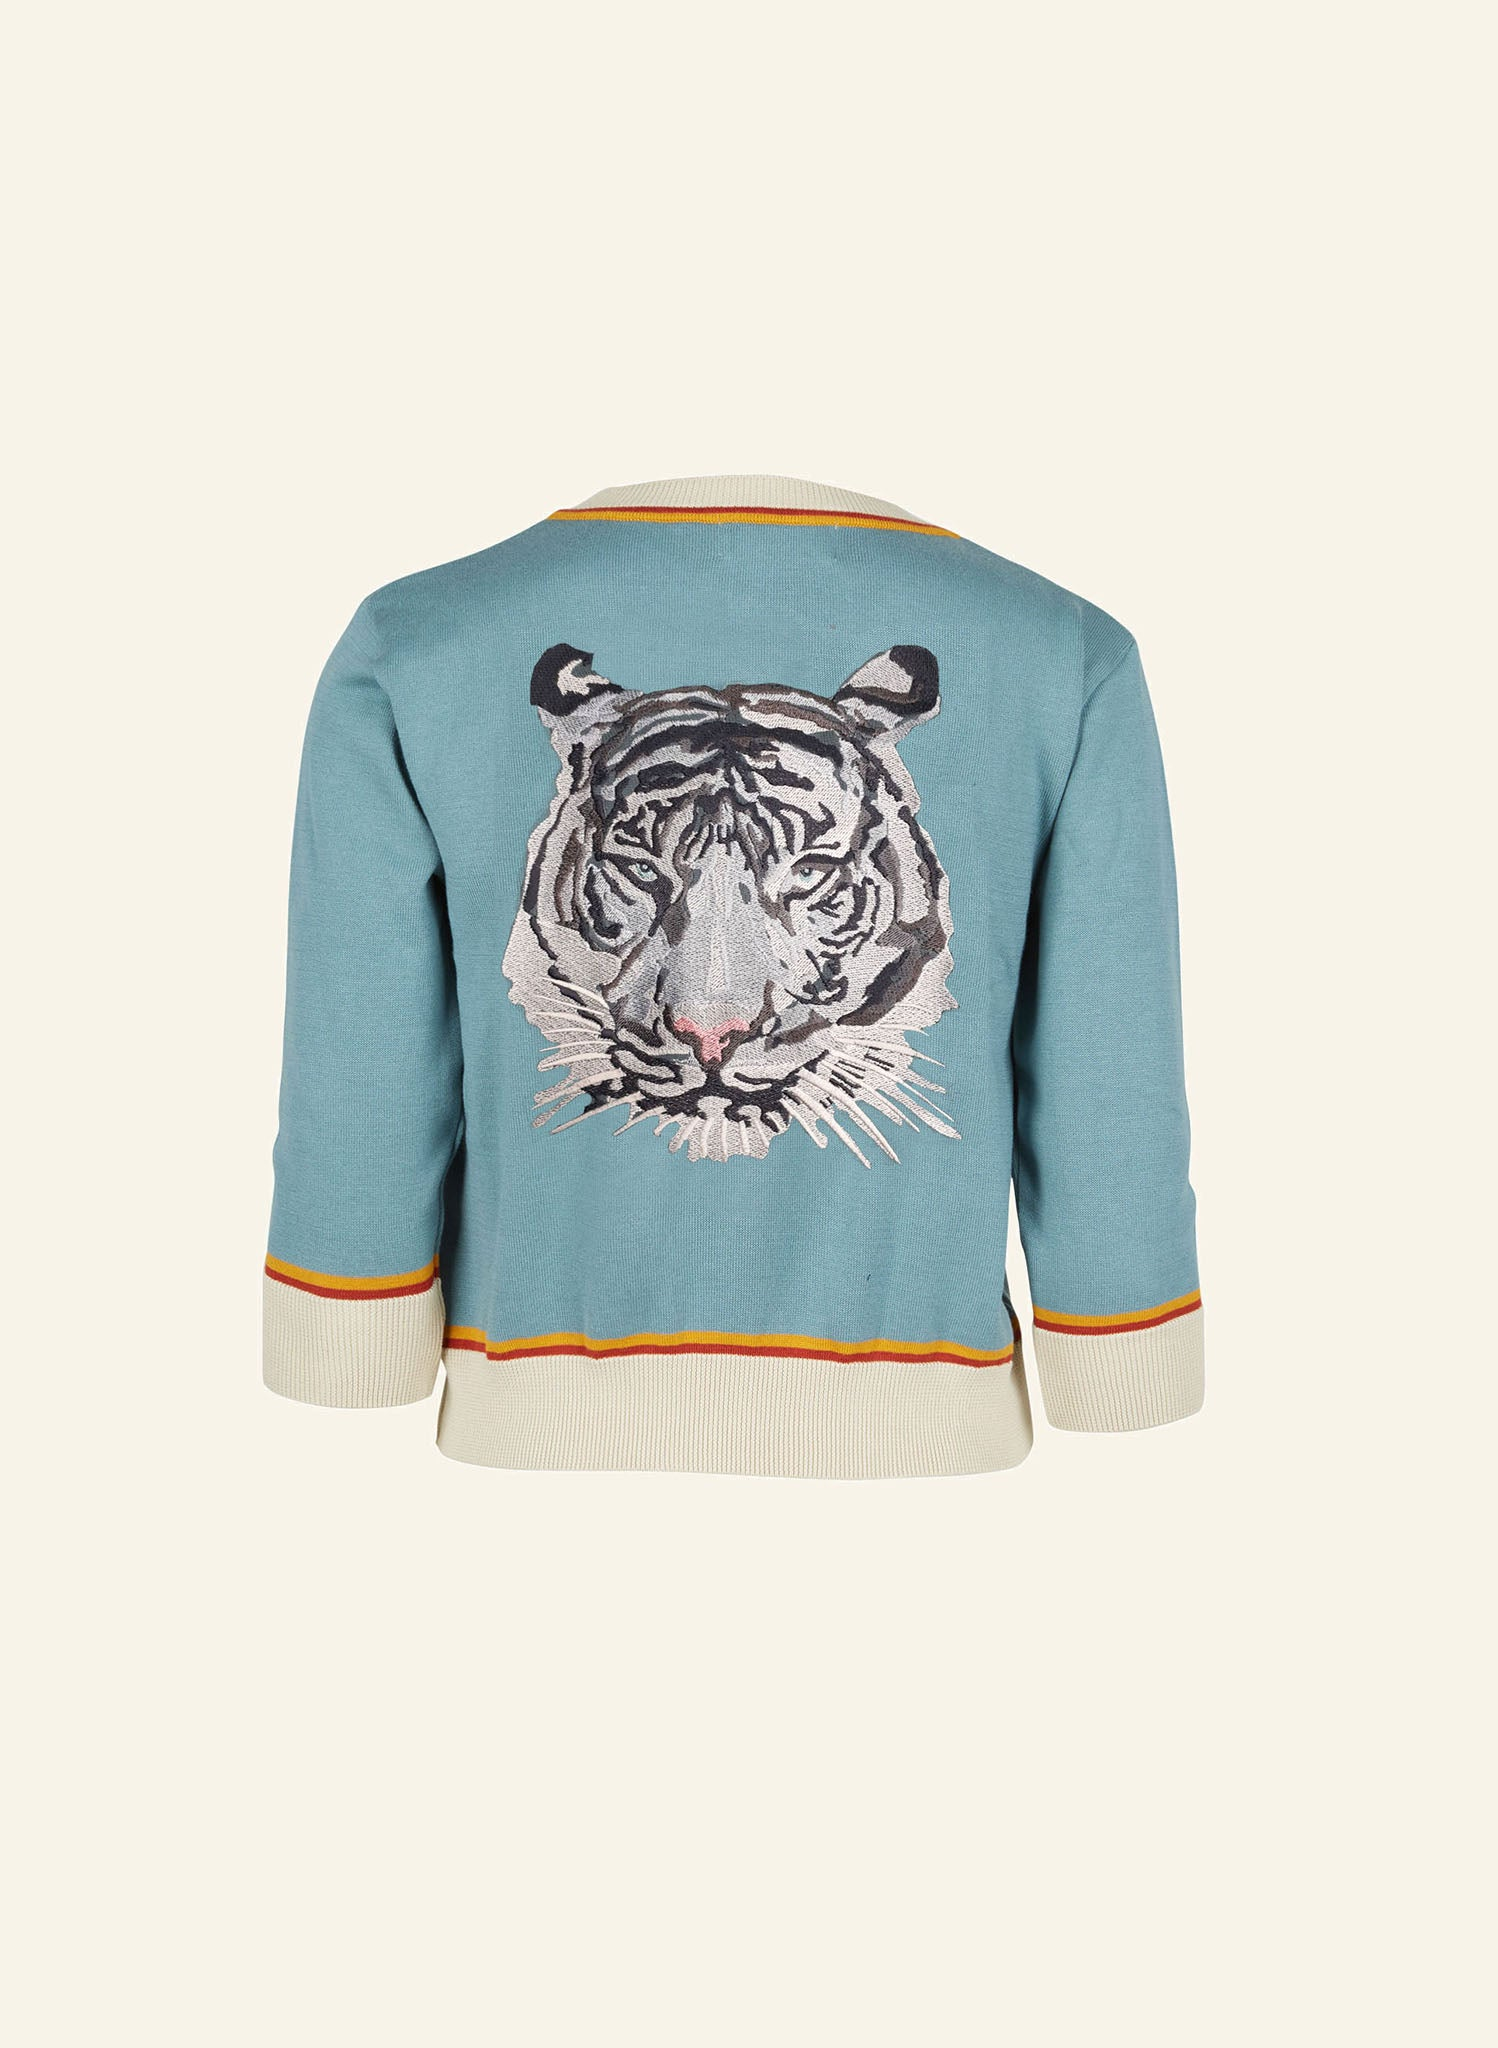 Vera - Blue Embroidered White Tiger - Organic Cotton Cardigan